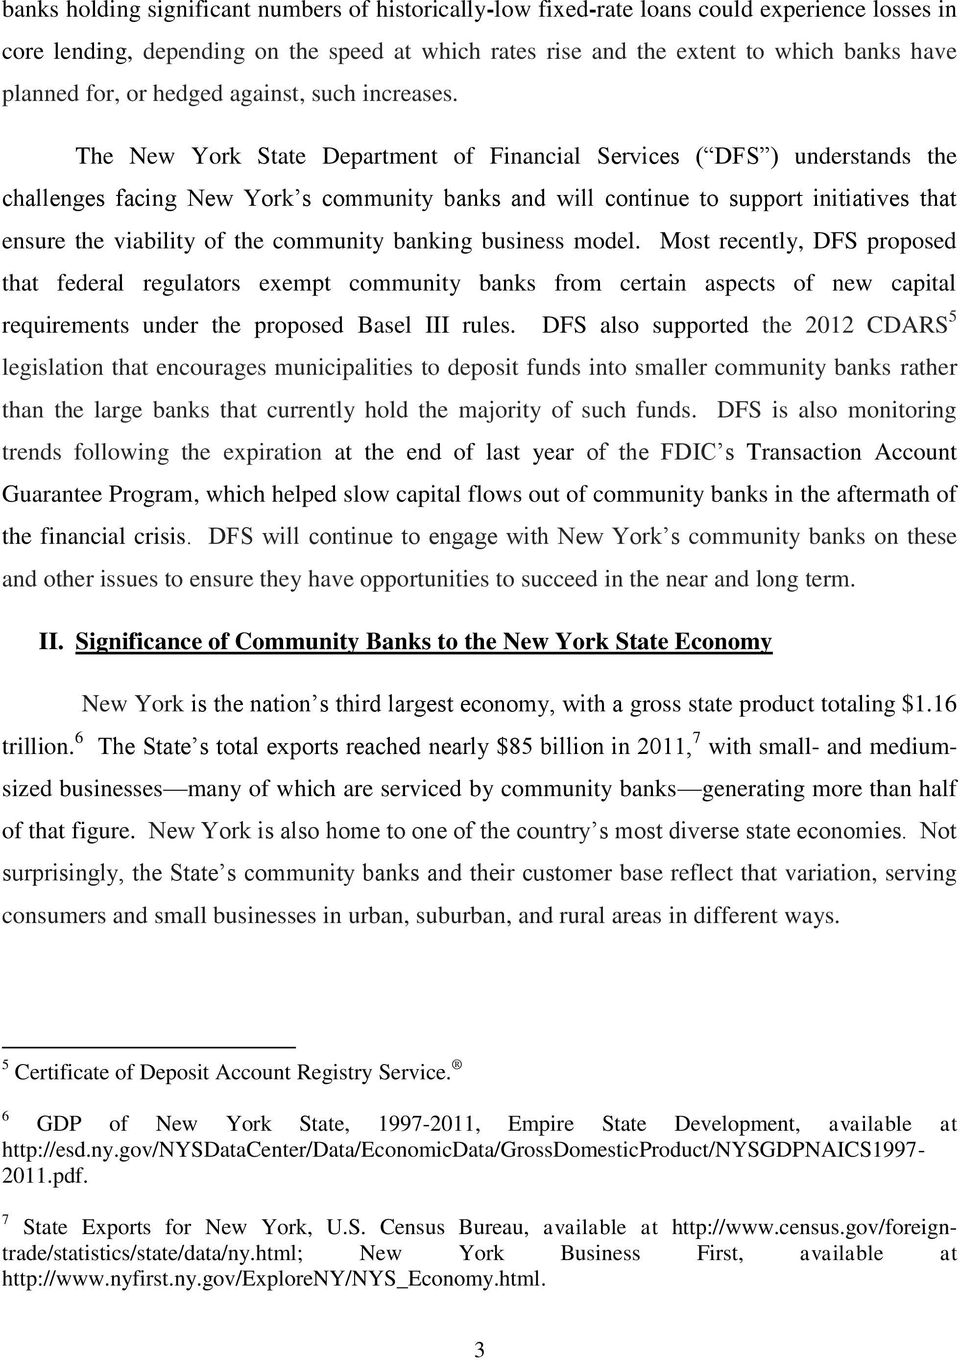 The New York State Department of Financial Services ( DFS ) understands the challenges facing New York s community banks and will continue to support initiatives that ensure the viability of the